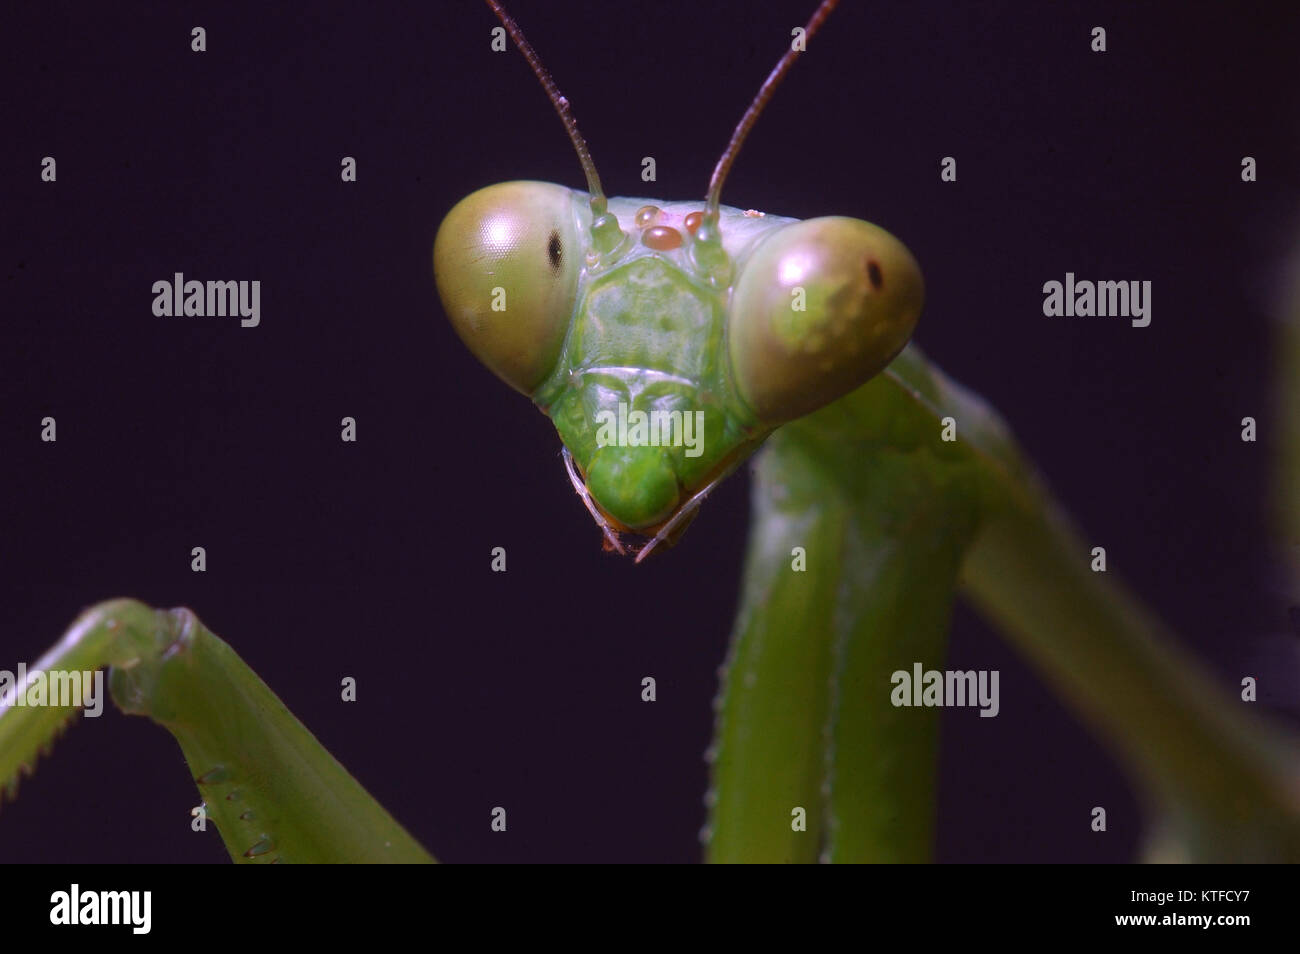 Portrait of Giant Indian Praying mantis, probably Hierodula membranacea or Hierodula grandis, on leaves in Tamil - Stock Image